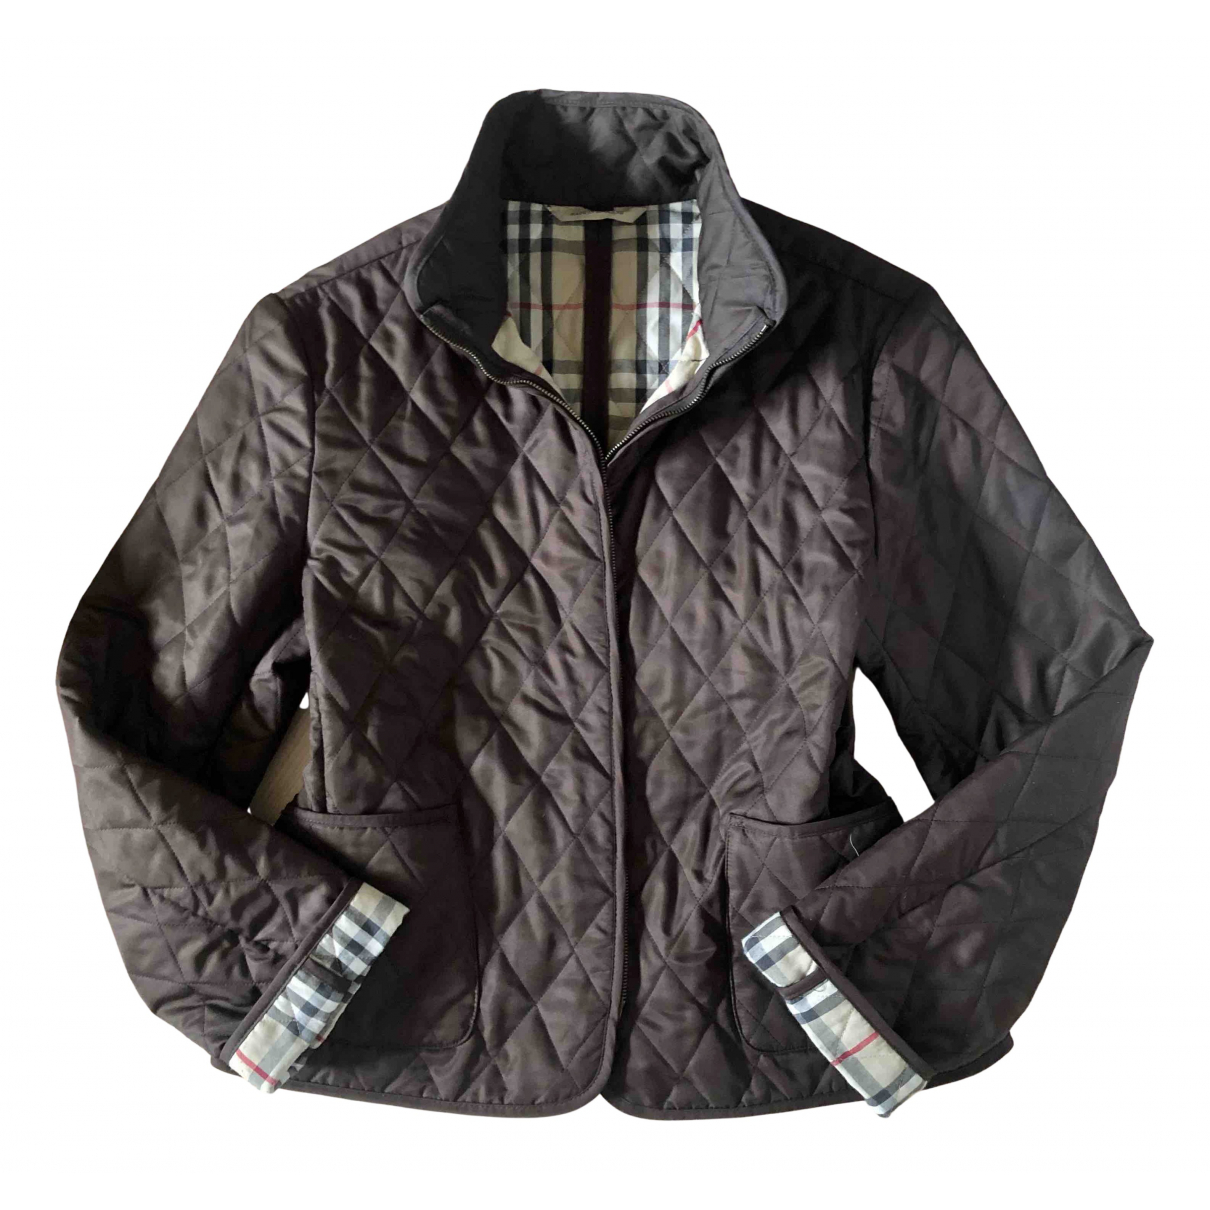 Burberry \N Jacke in  Braun Polyester